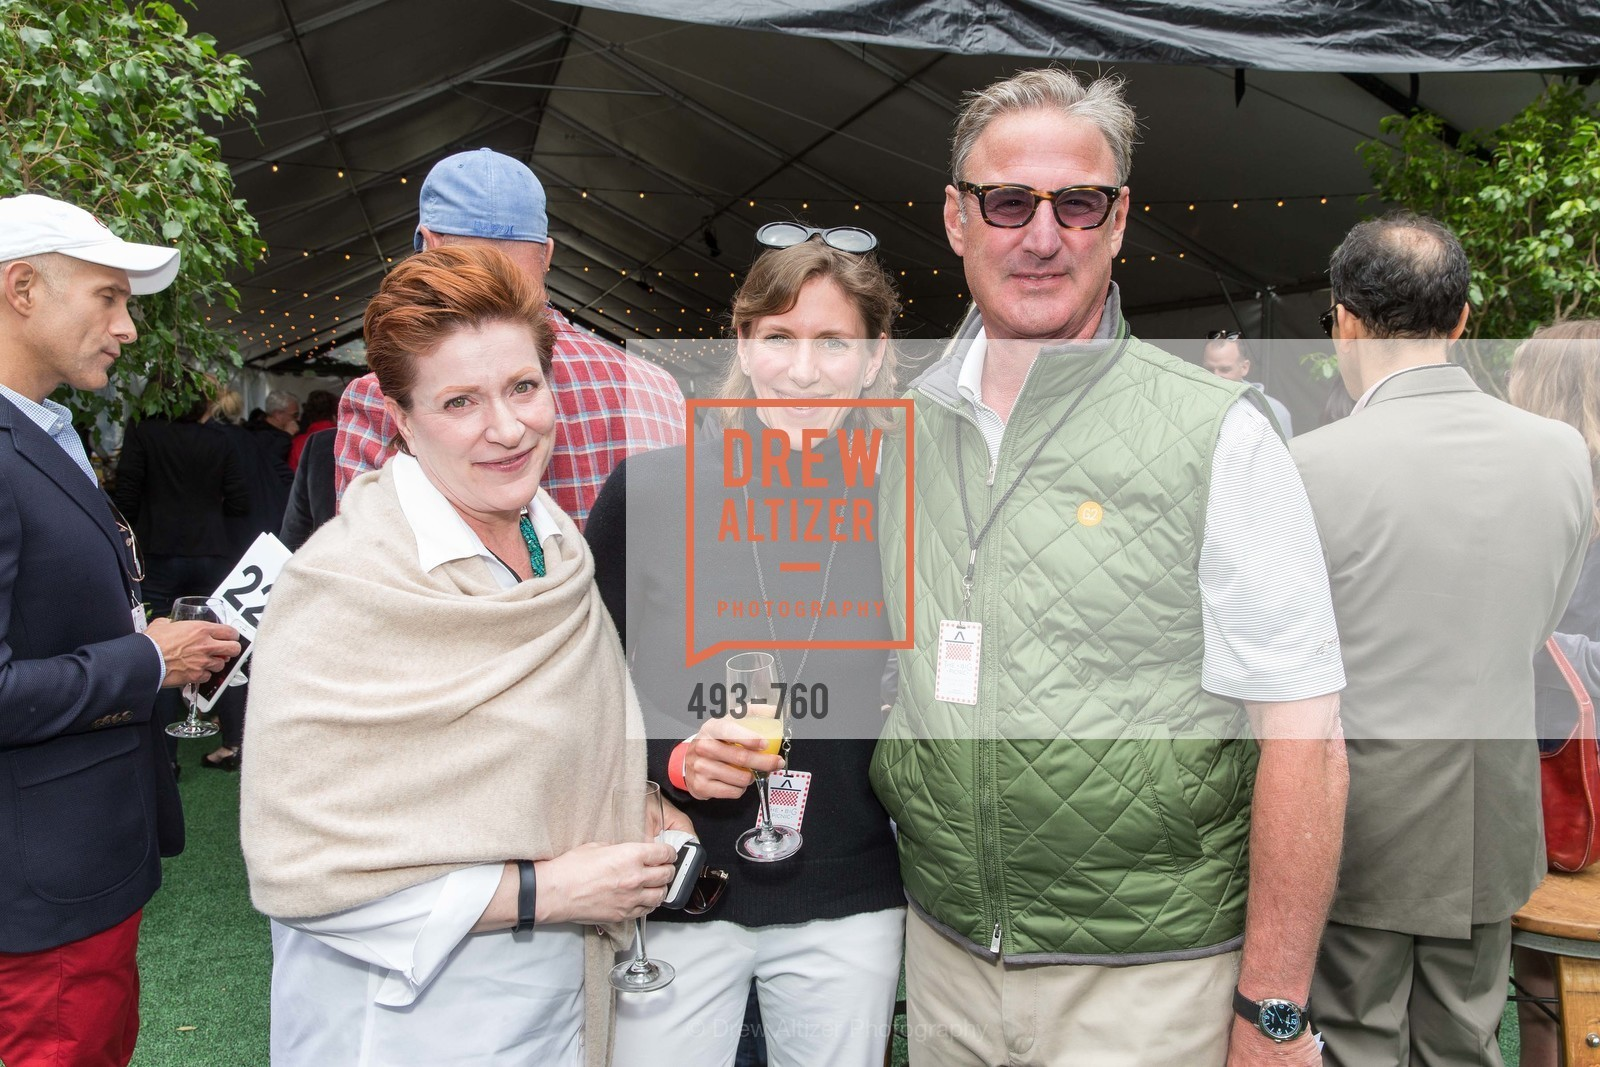 Karen Weber, Laura Hazlett, Larry Colton, The Big Picnic! A Benefit & Concert for STERN GROVE FESTIVAL, US, June 14th, 2015,Drew Altizer, Drew Altizer Photography, full-service agency, private events, San Francisco photographer, photographer california